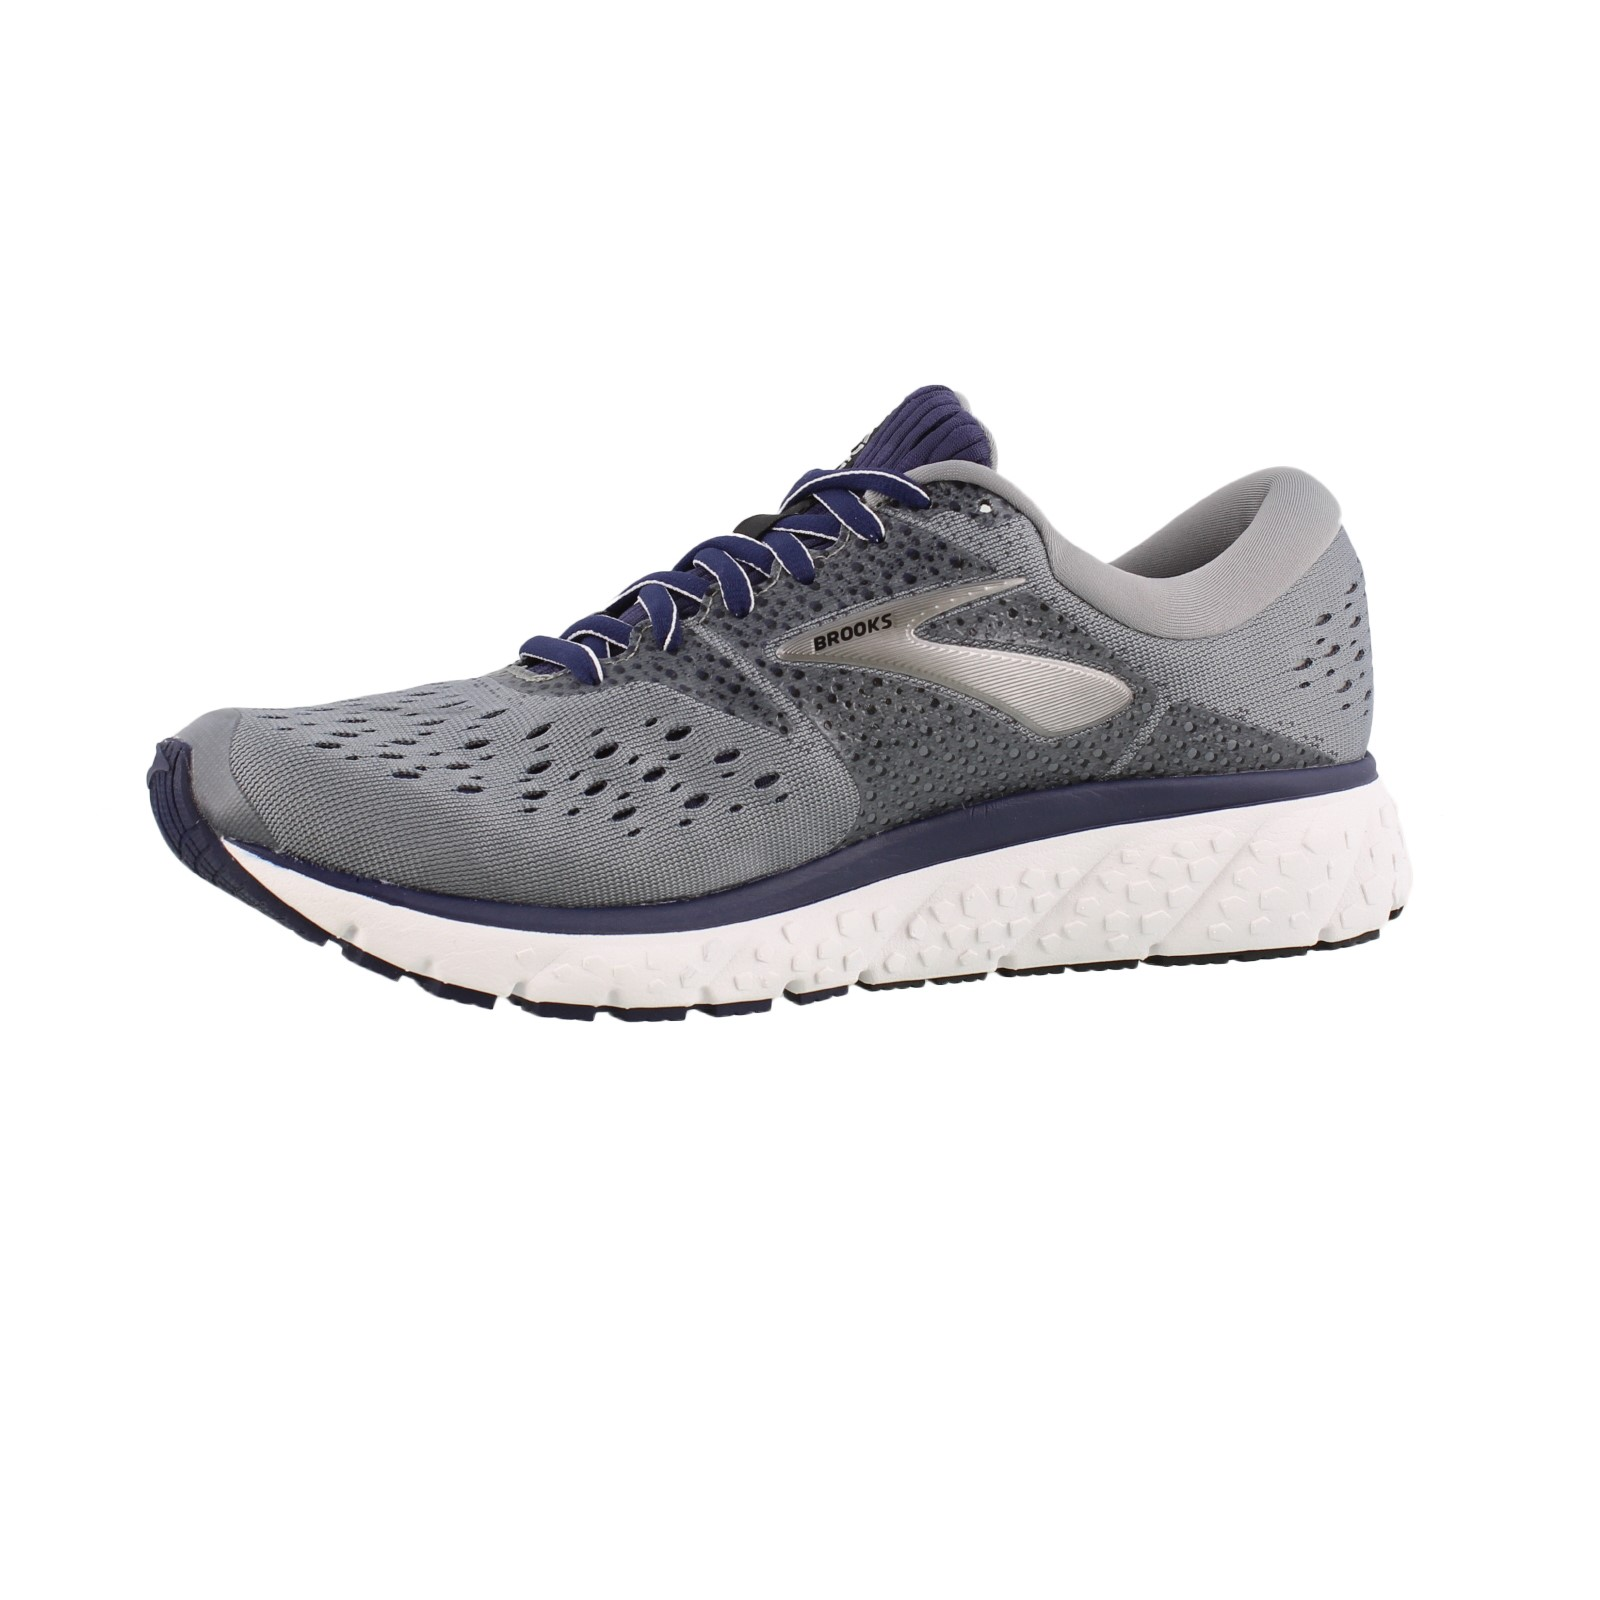 136a158fb3238 Next. add to favorites. Men s Brooks